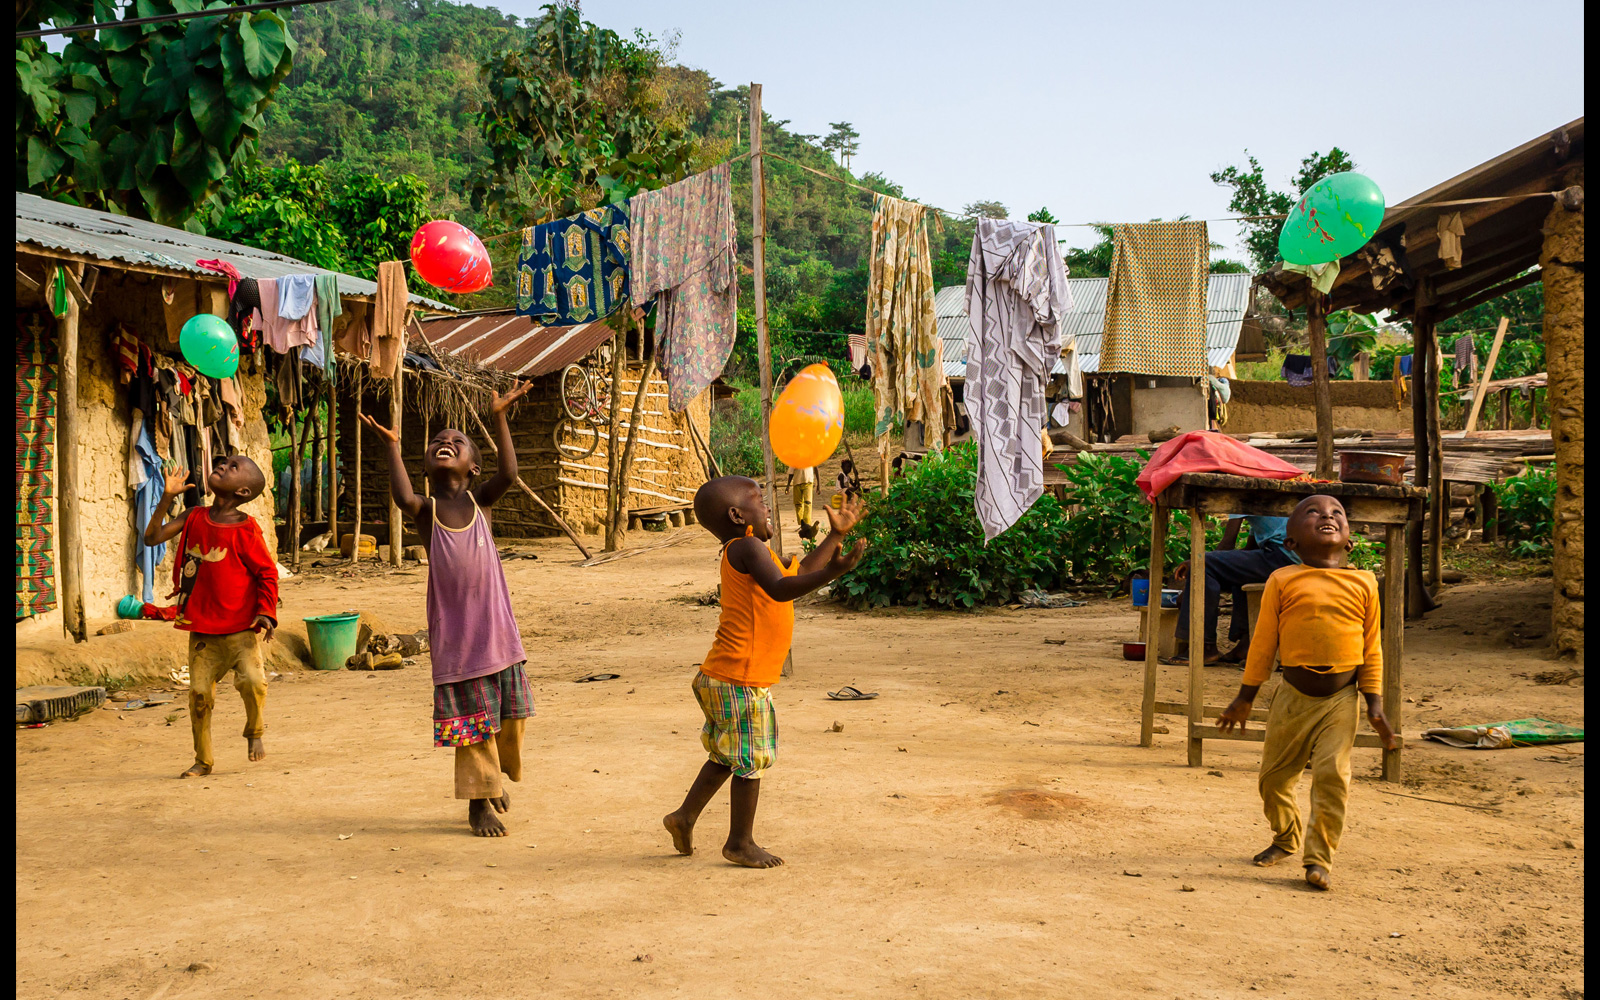 A group of children playing with balloons for the first time in their lives, Bibiani, Ghana © Karel Haal